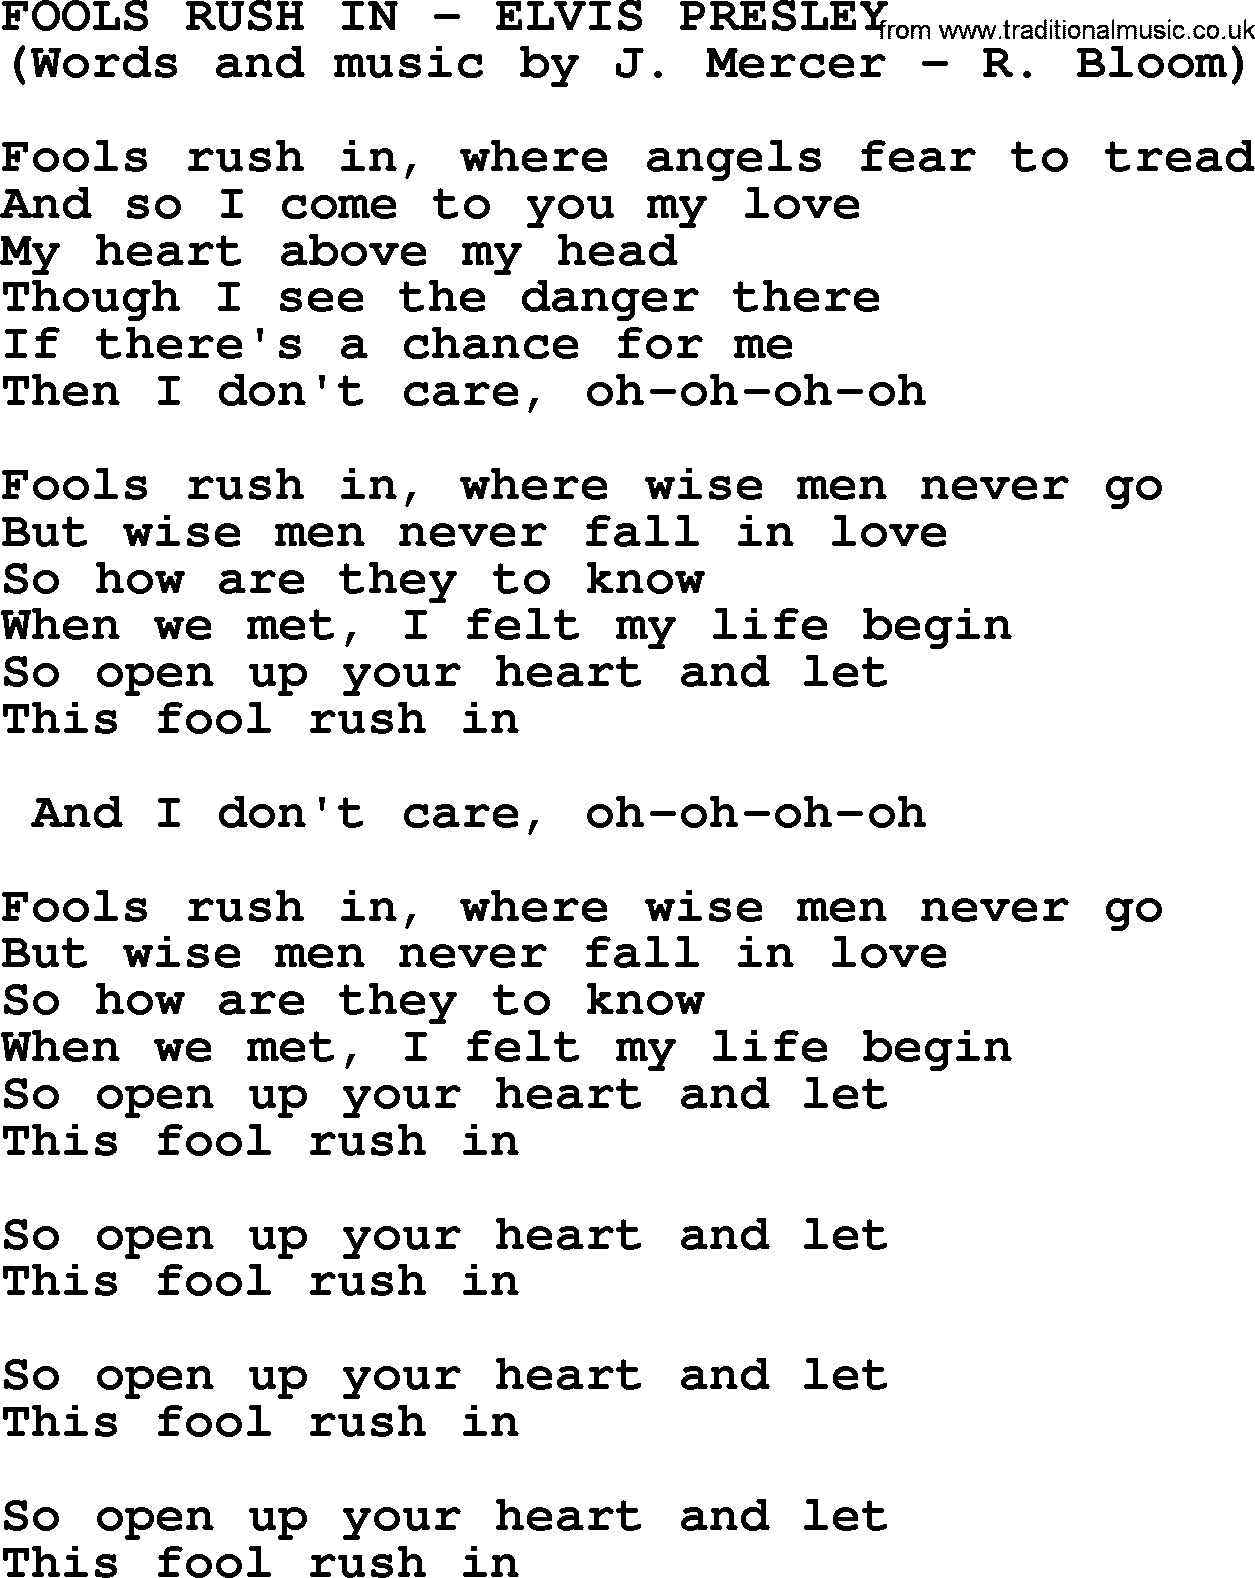 7 Rules Of Life Quote Fools Rush Inelvis Presley  Lyrics